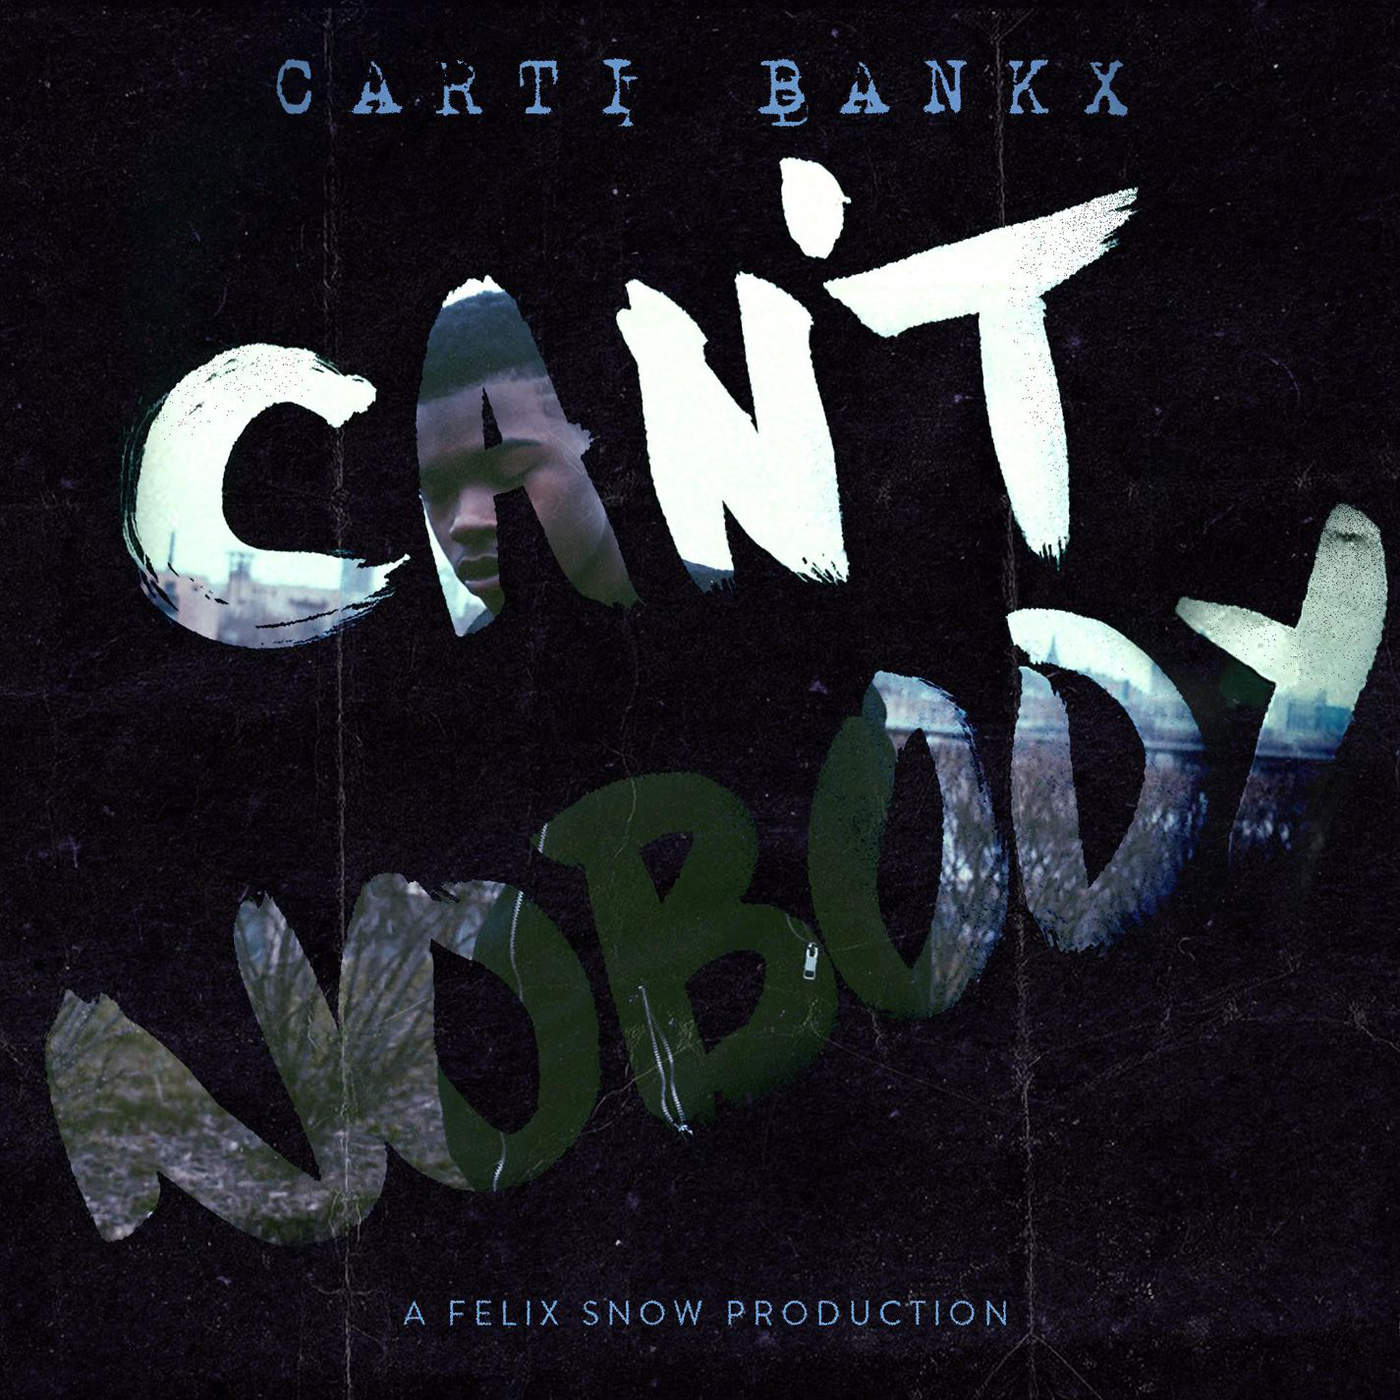 Felix Snow - Can't Nobody (feat. Carti Bankx) - Single